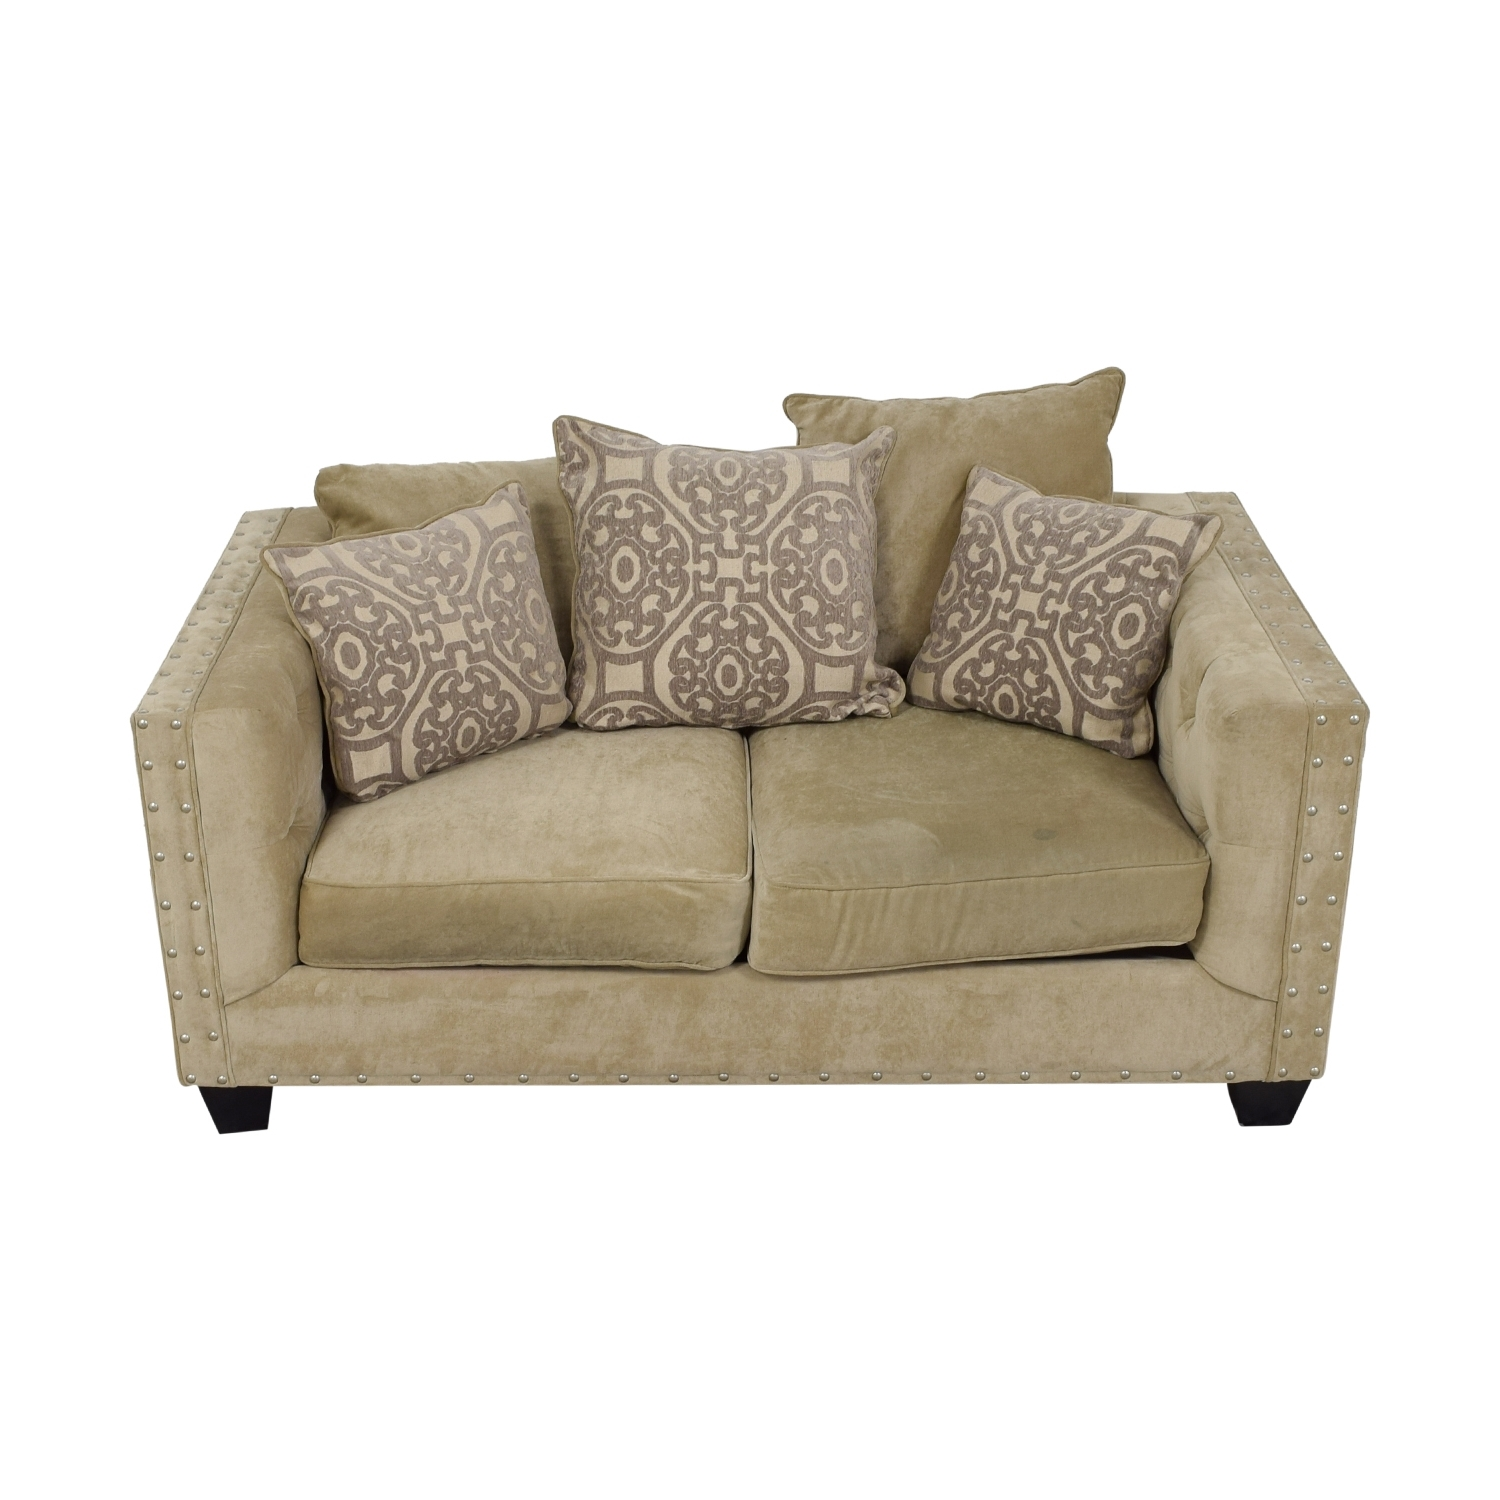 [%45% Off – West Elm West Elm Everett Dark Grey Microsuede Couch / Sofas With Latest Cindy Crawford Sofas|Cindy Crawford Sofas With Best And Newest 45% Off – West Elm West Elm Everett Dark Grey Microsuede Couch / Sofas|Trendy Cindy Crawford Sofas Throughout 45% Off – West Elm West Elm Everett Dark Grey Microsuede Couch / Sofas|Fashionable 45% Off – West Elm West Elm Everett Dark Grey Microsuede Couch / Sofas Intended For Cindy Crawford Sofas%] (View 14 of 15)